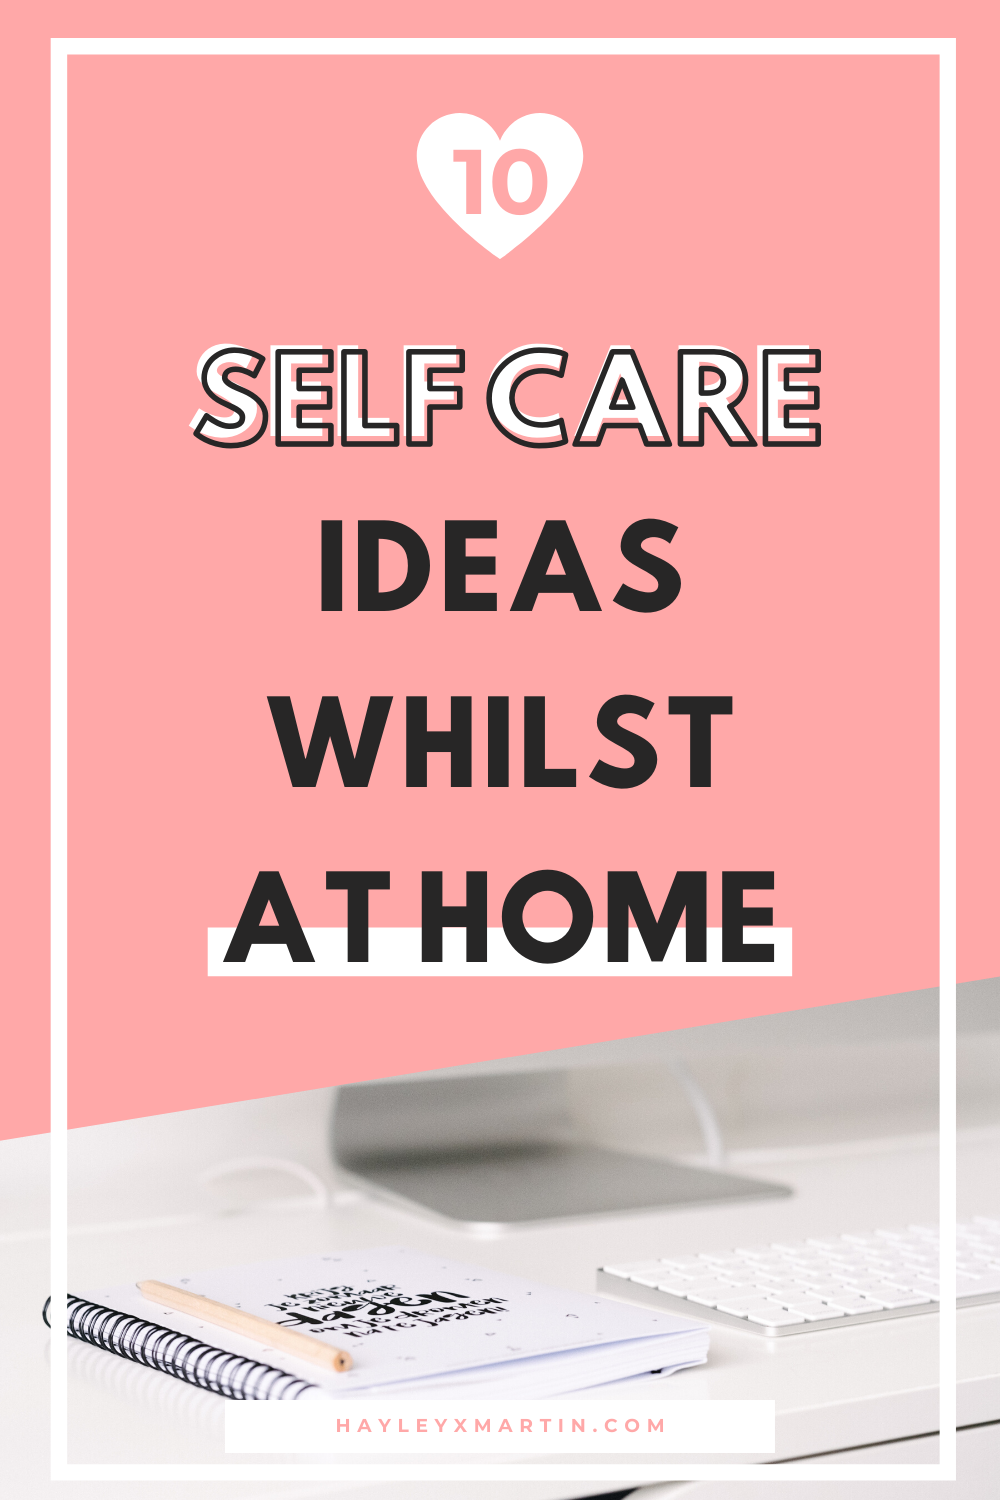 10 self care ideas whilst at home | hayleyxmartin